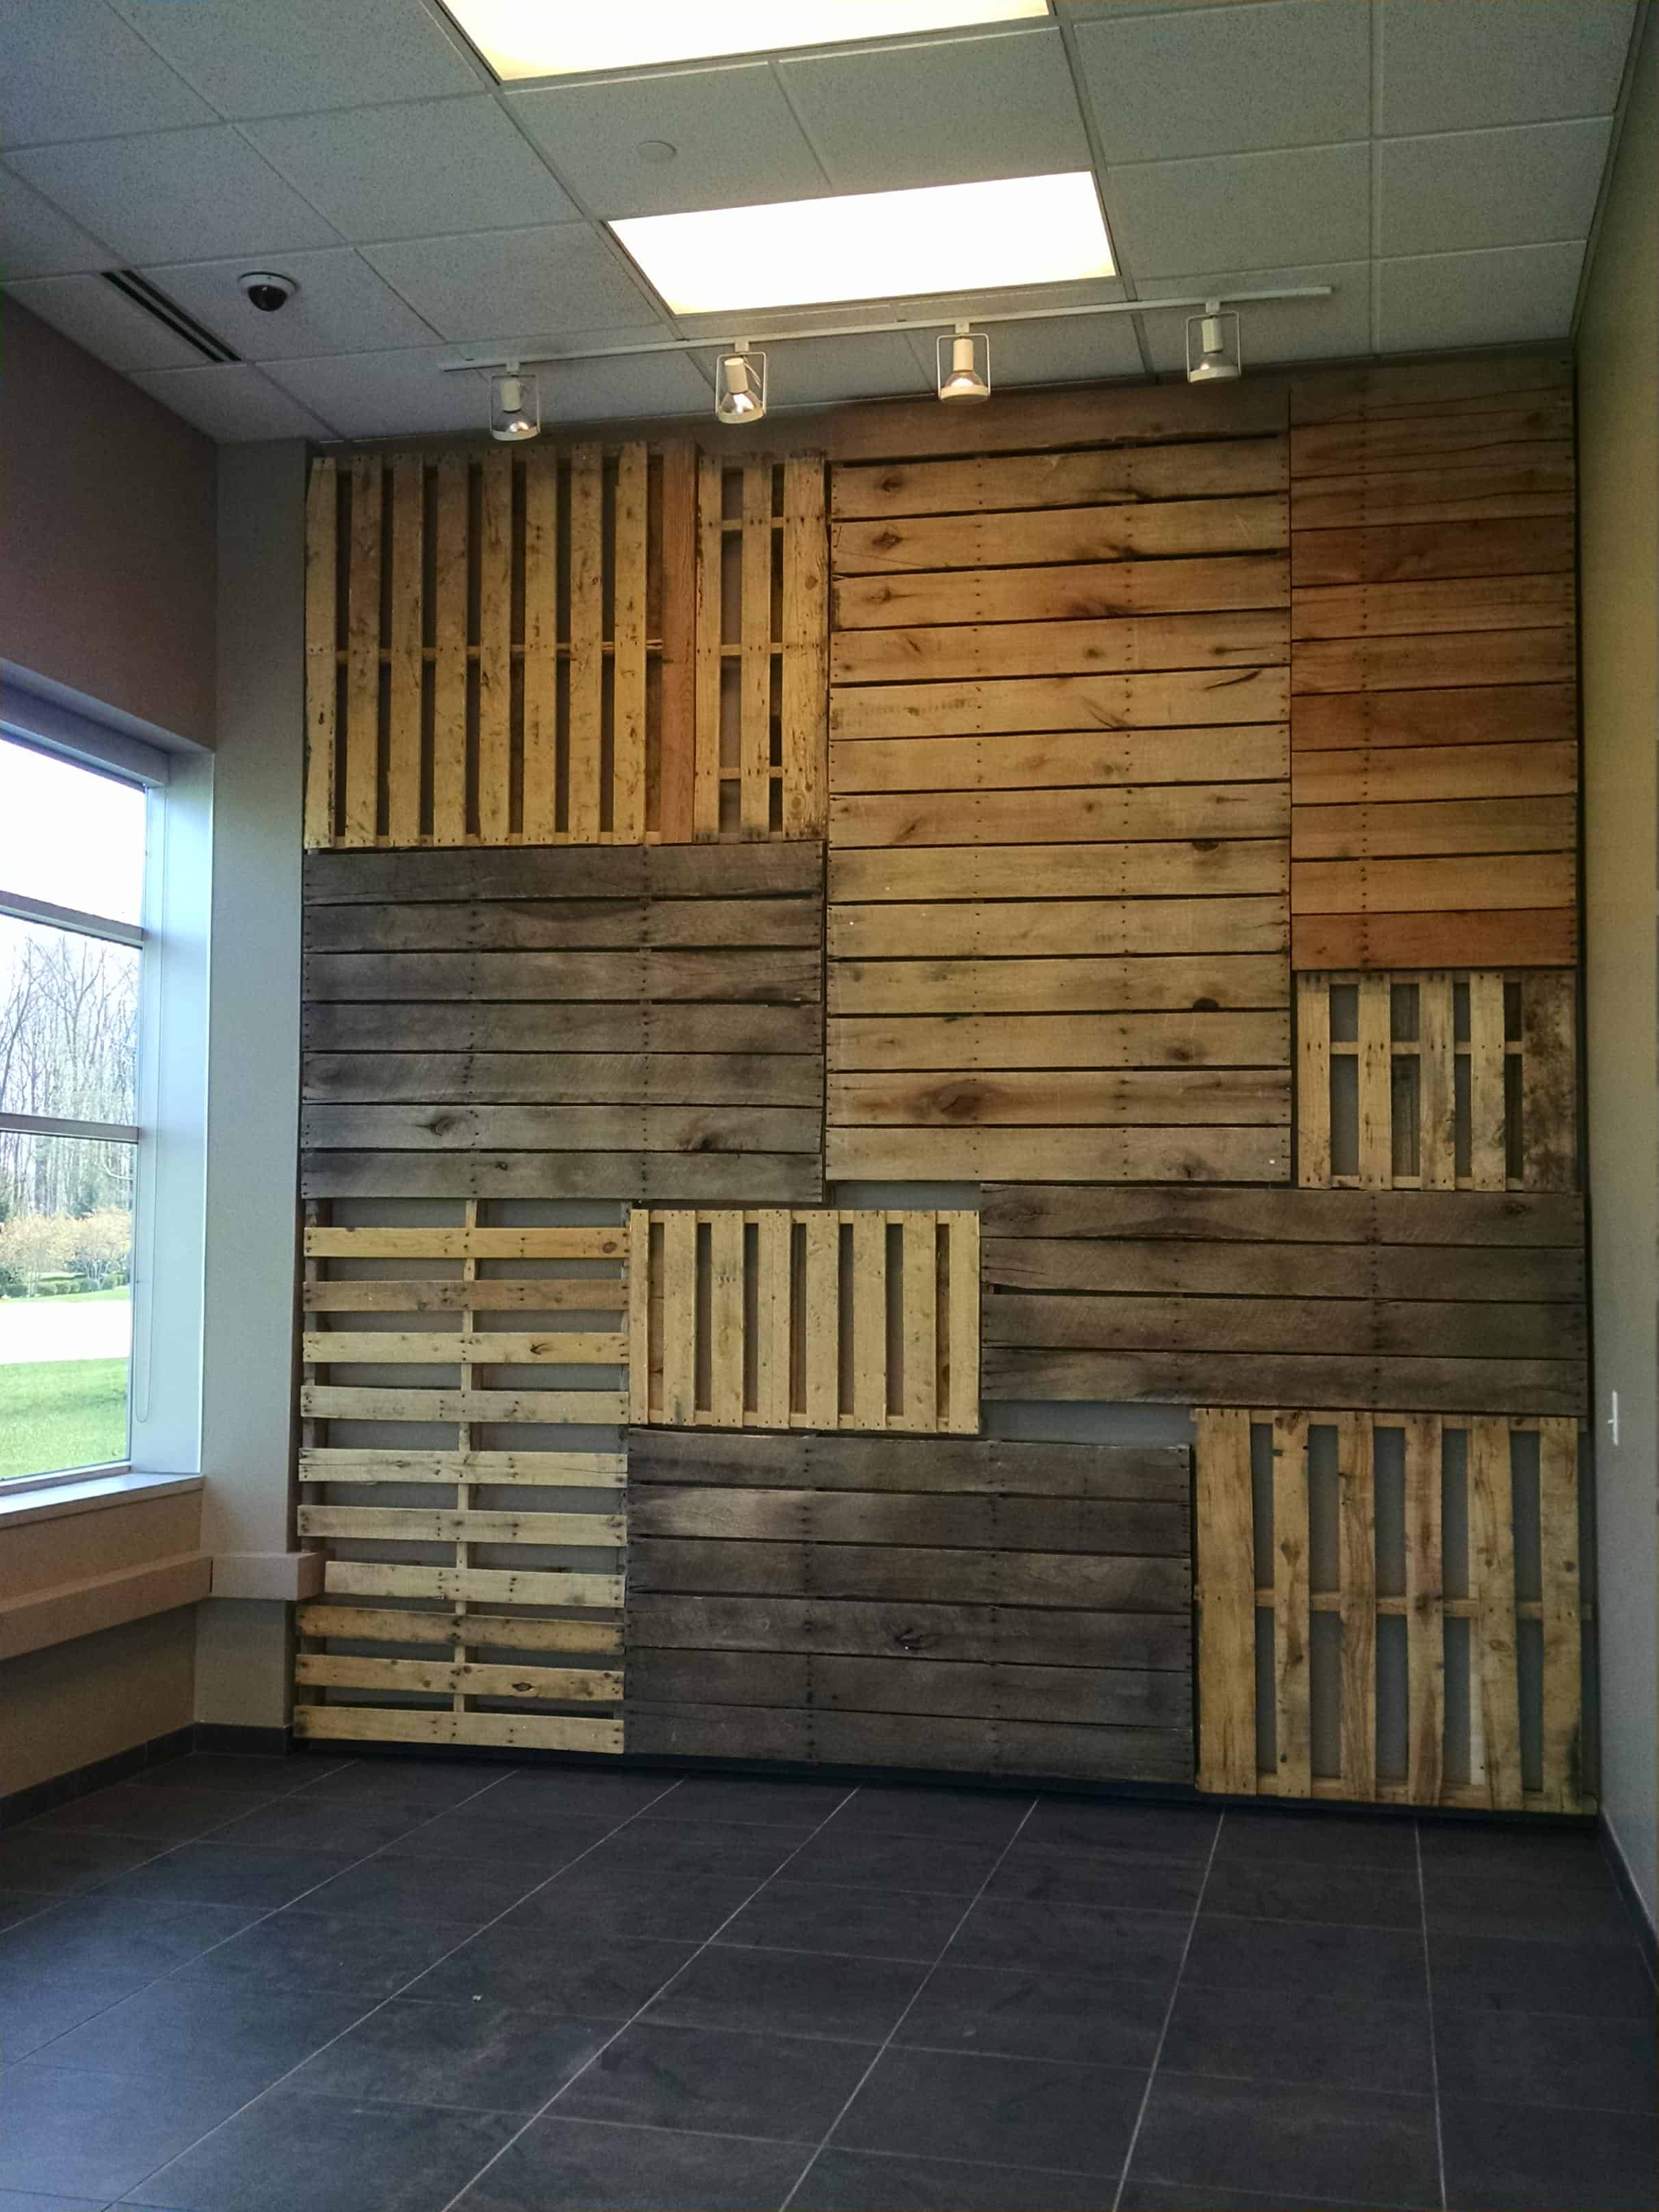 Pallet walls amp pallet doors diy wood pallet projects amp ideas